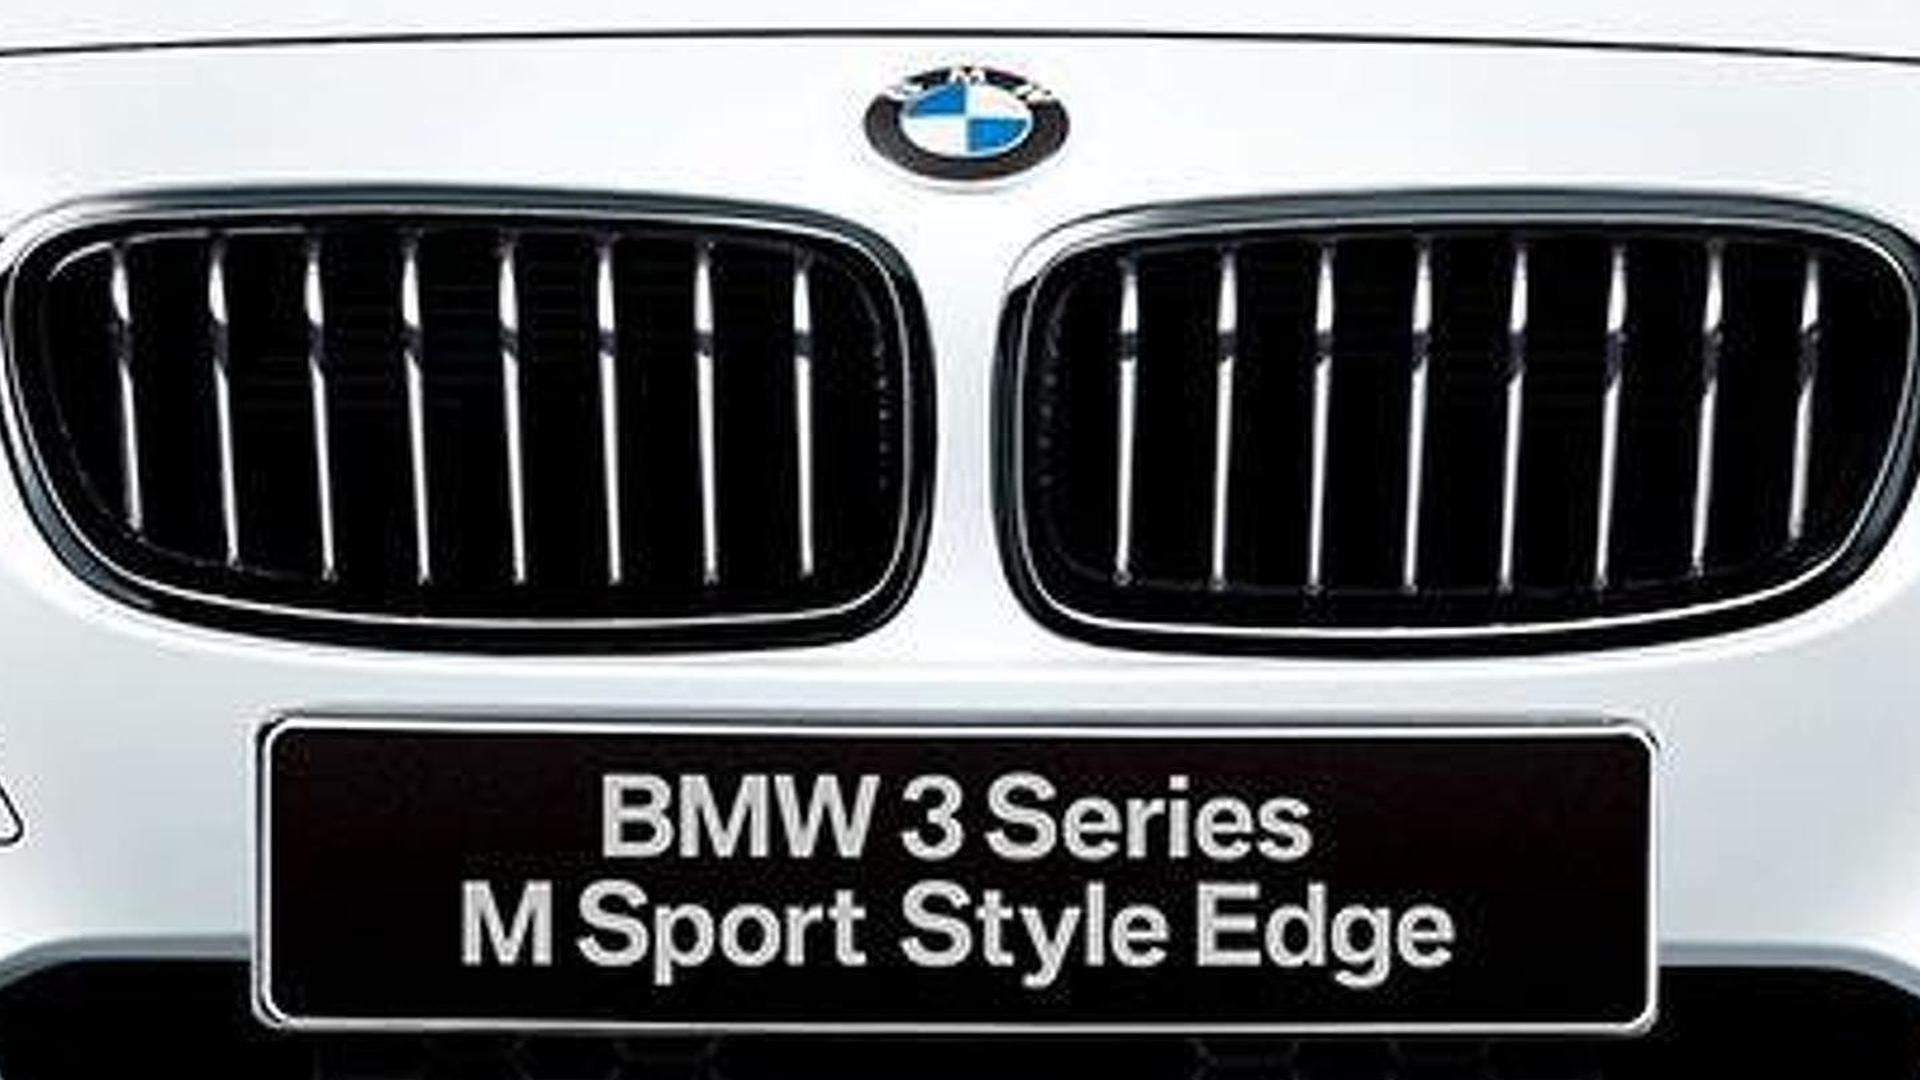 Bmw 3 Series M Sport Style Edge Limited Edition Announced Motor1